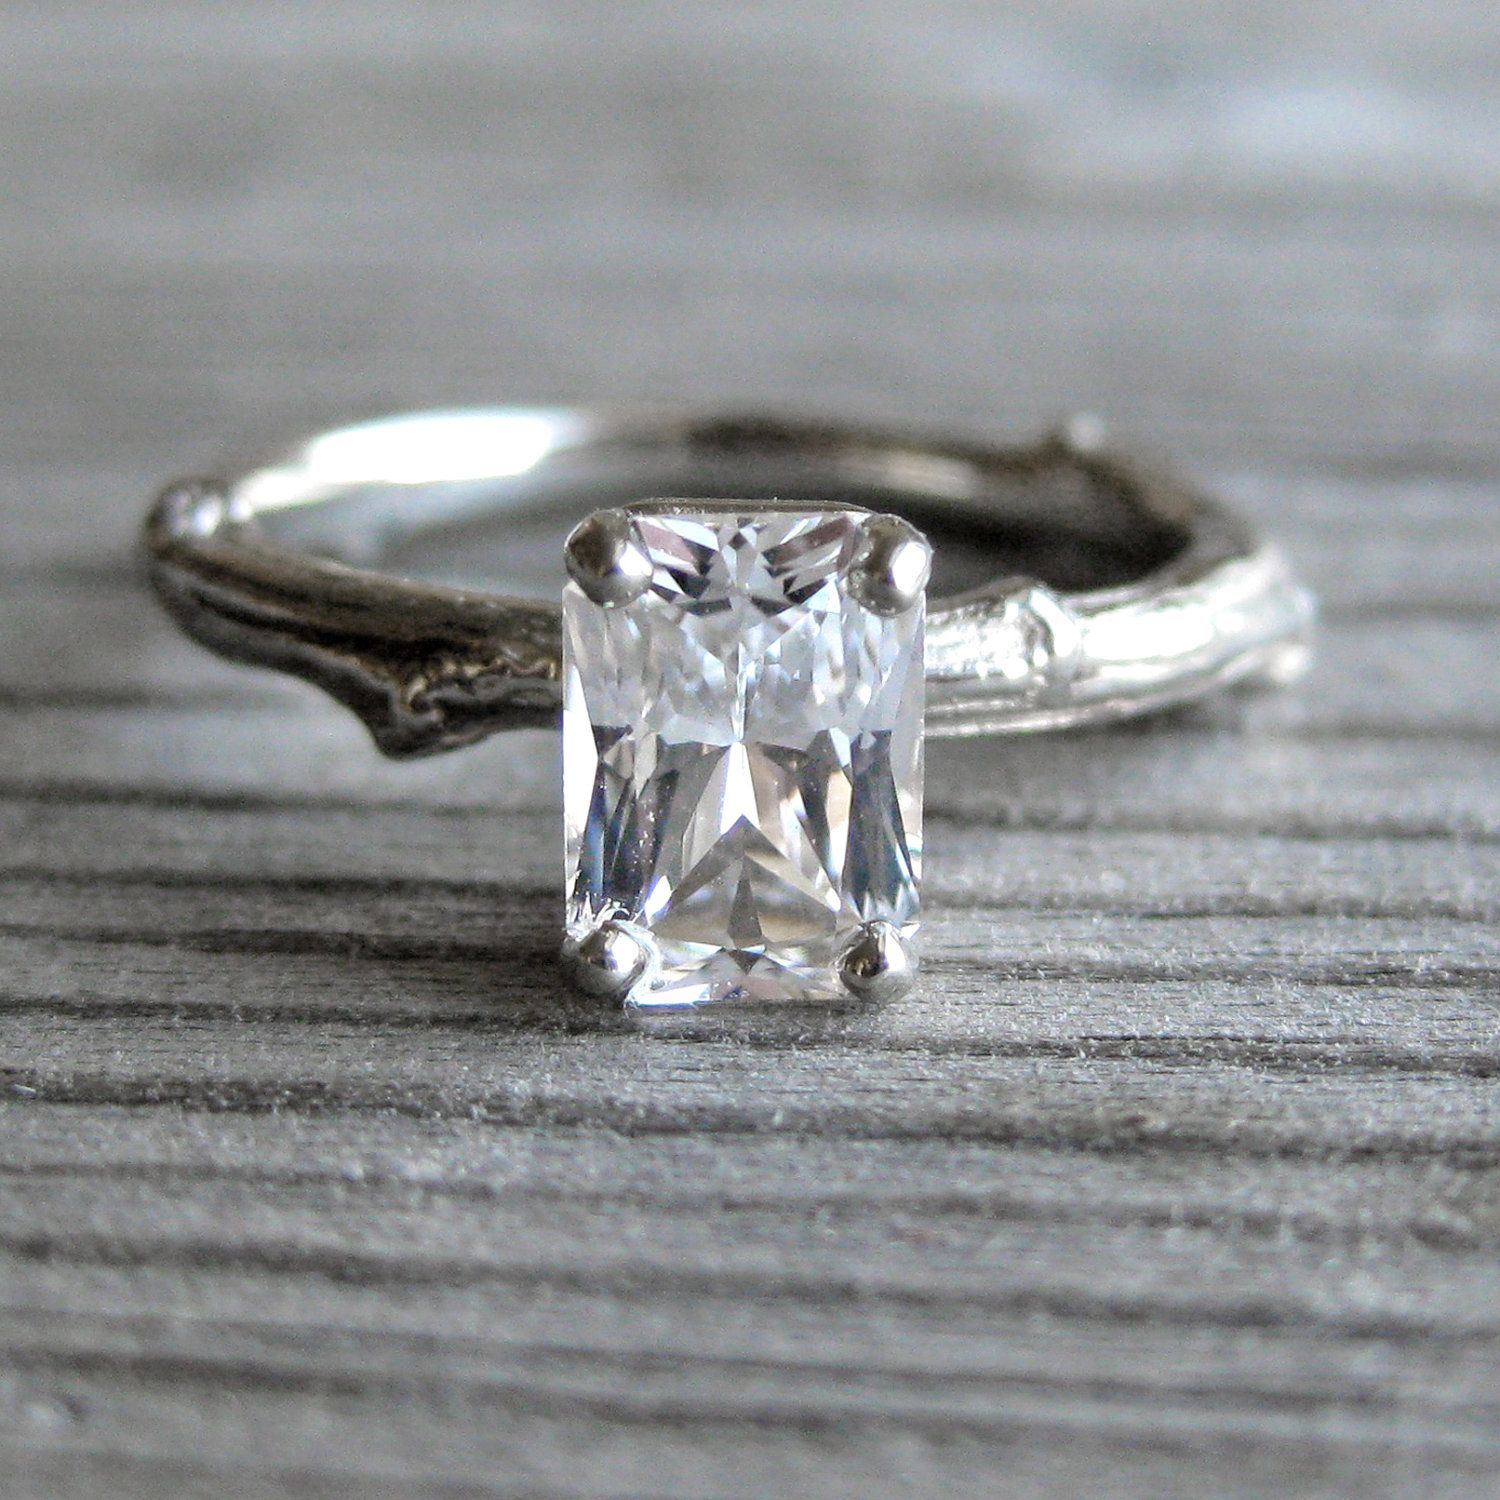 rings side cut carat sapp engagement em white wh rosemary sapphire new twig products ring kristin radiant